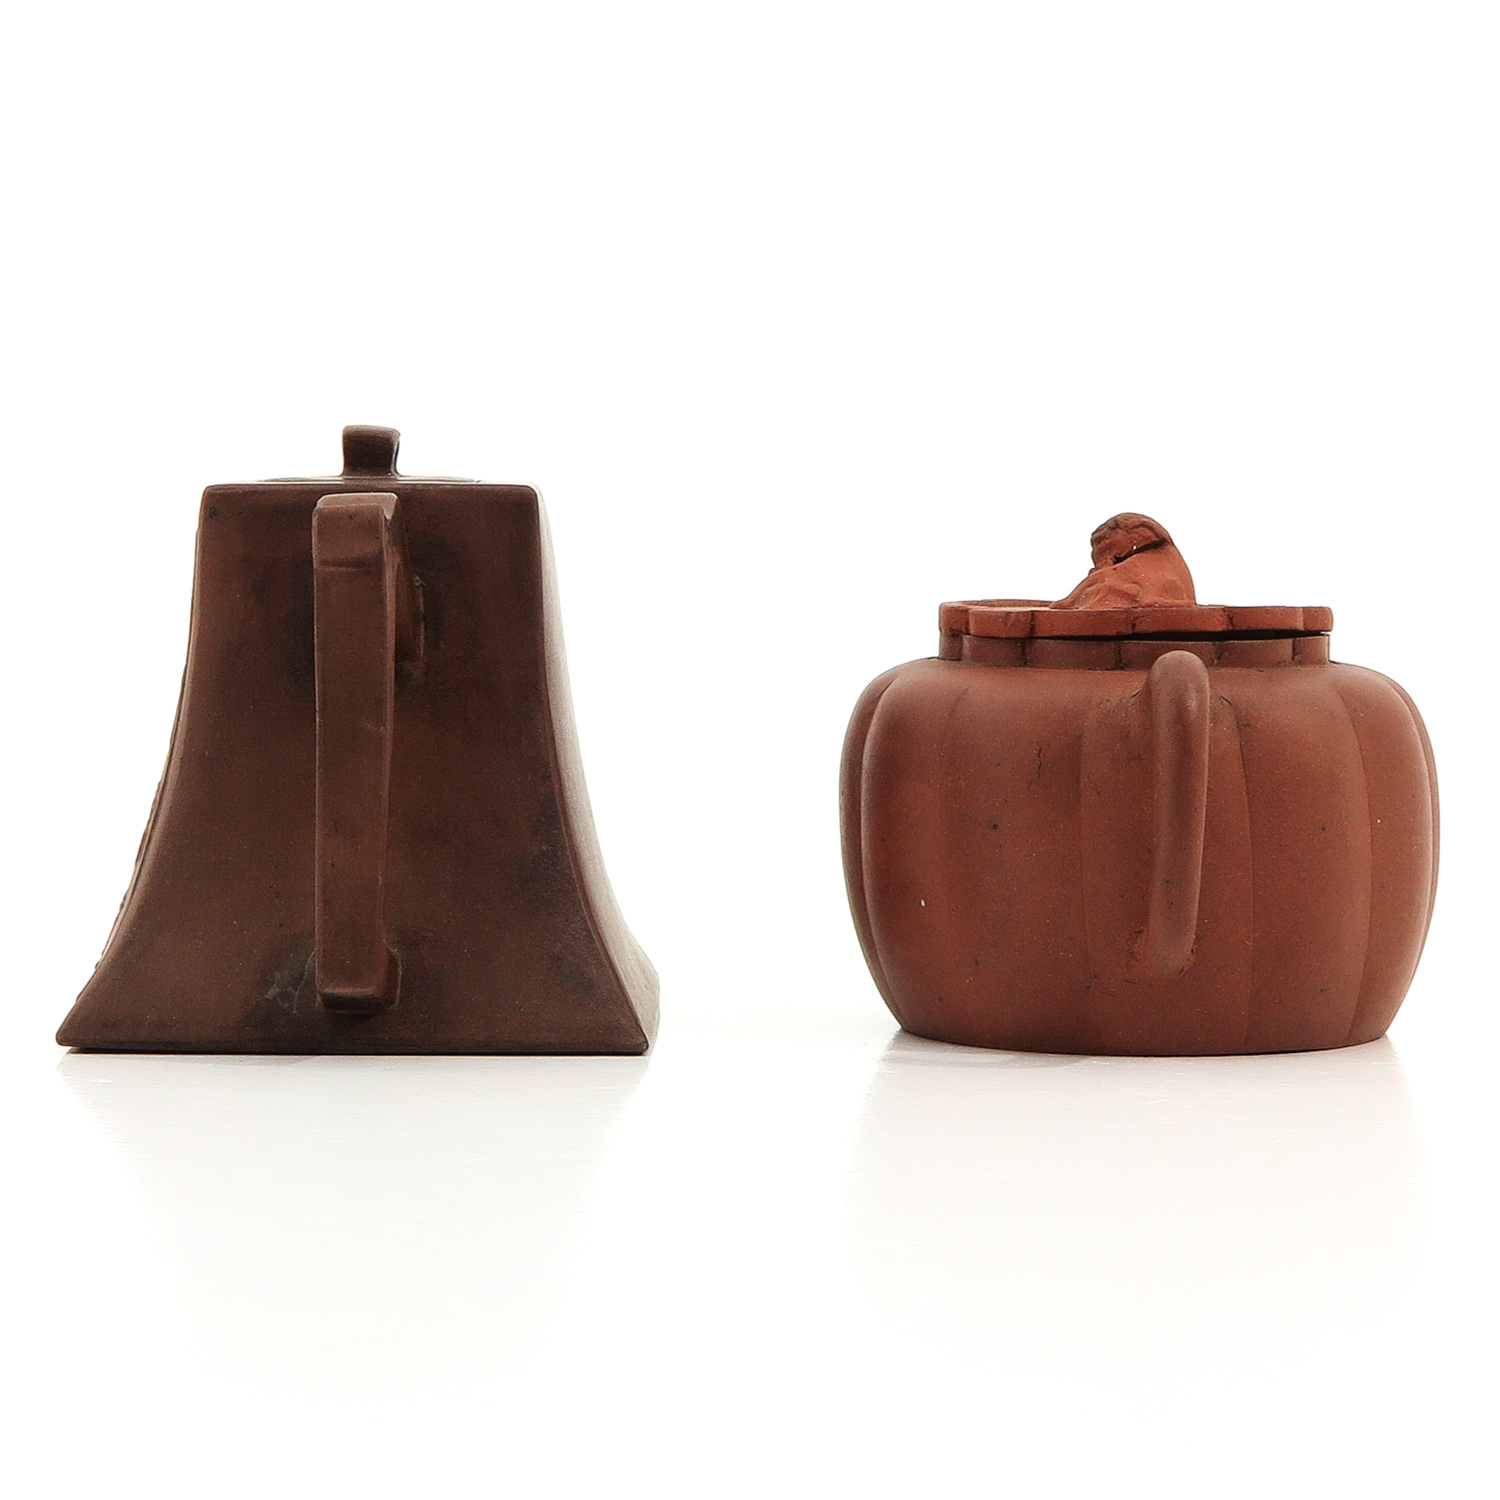 A Lot of 2 Yixing Teapots - Image 2 of 10